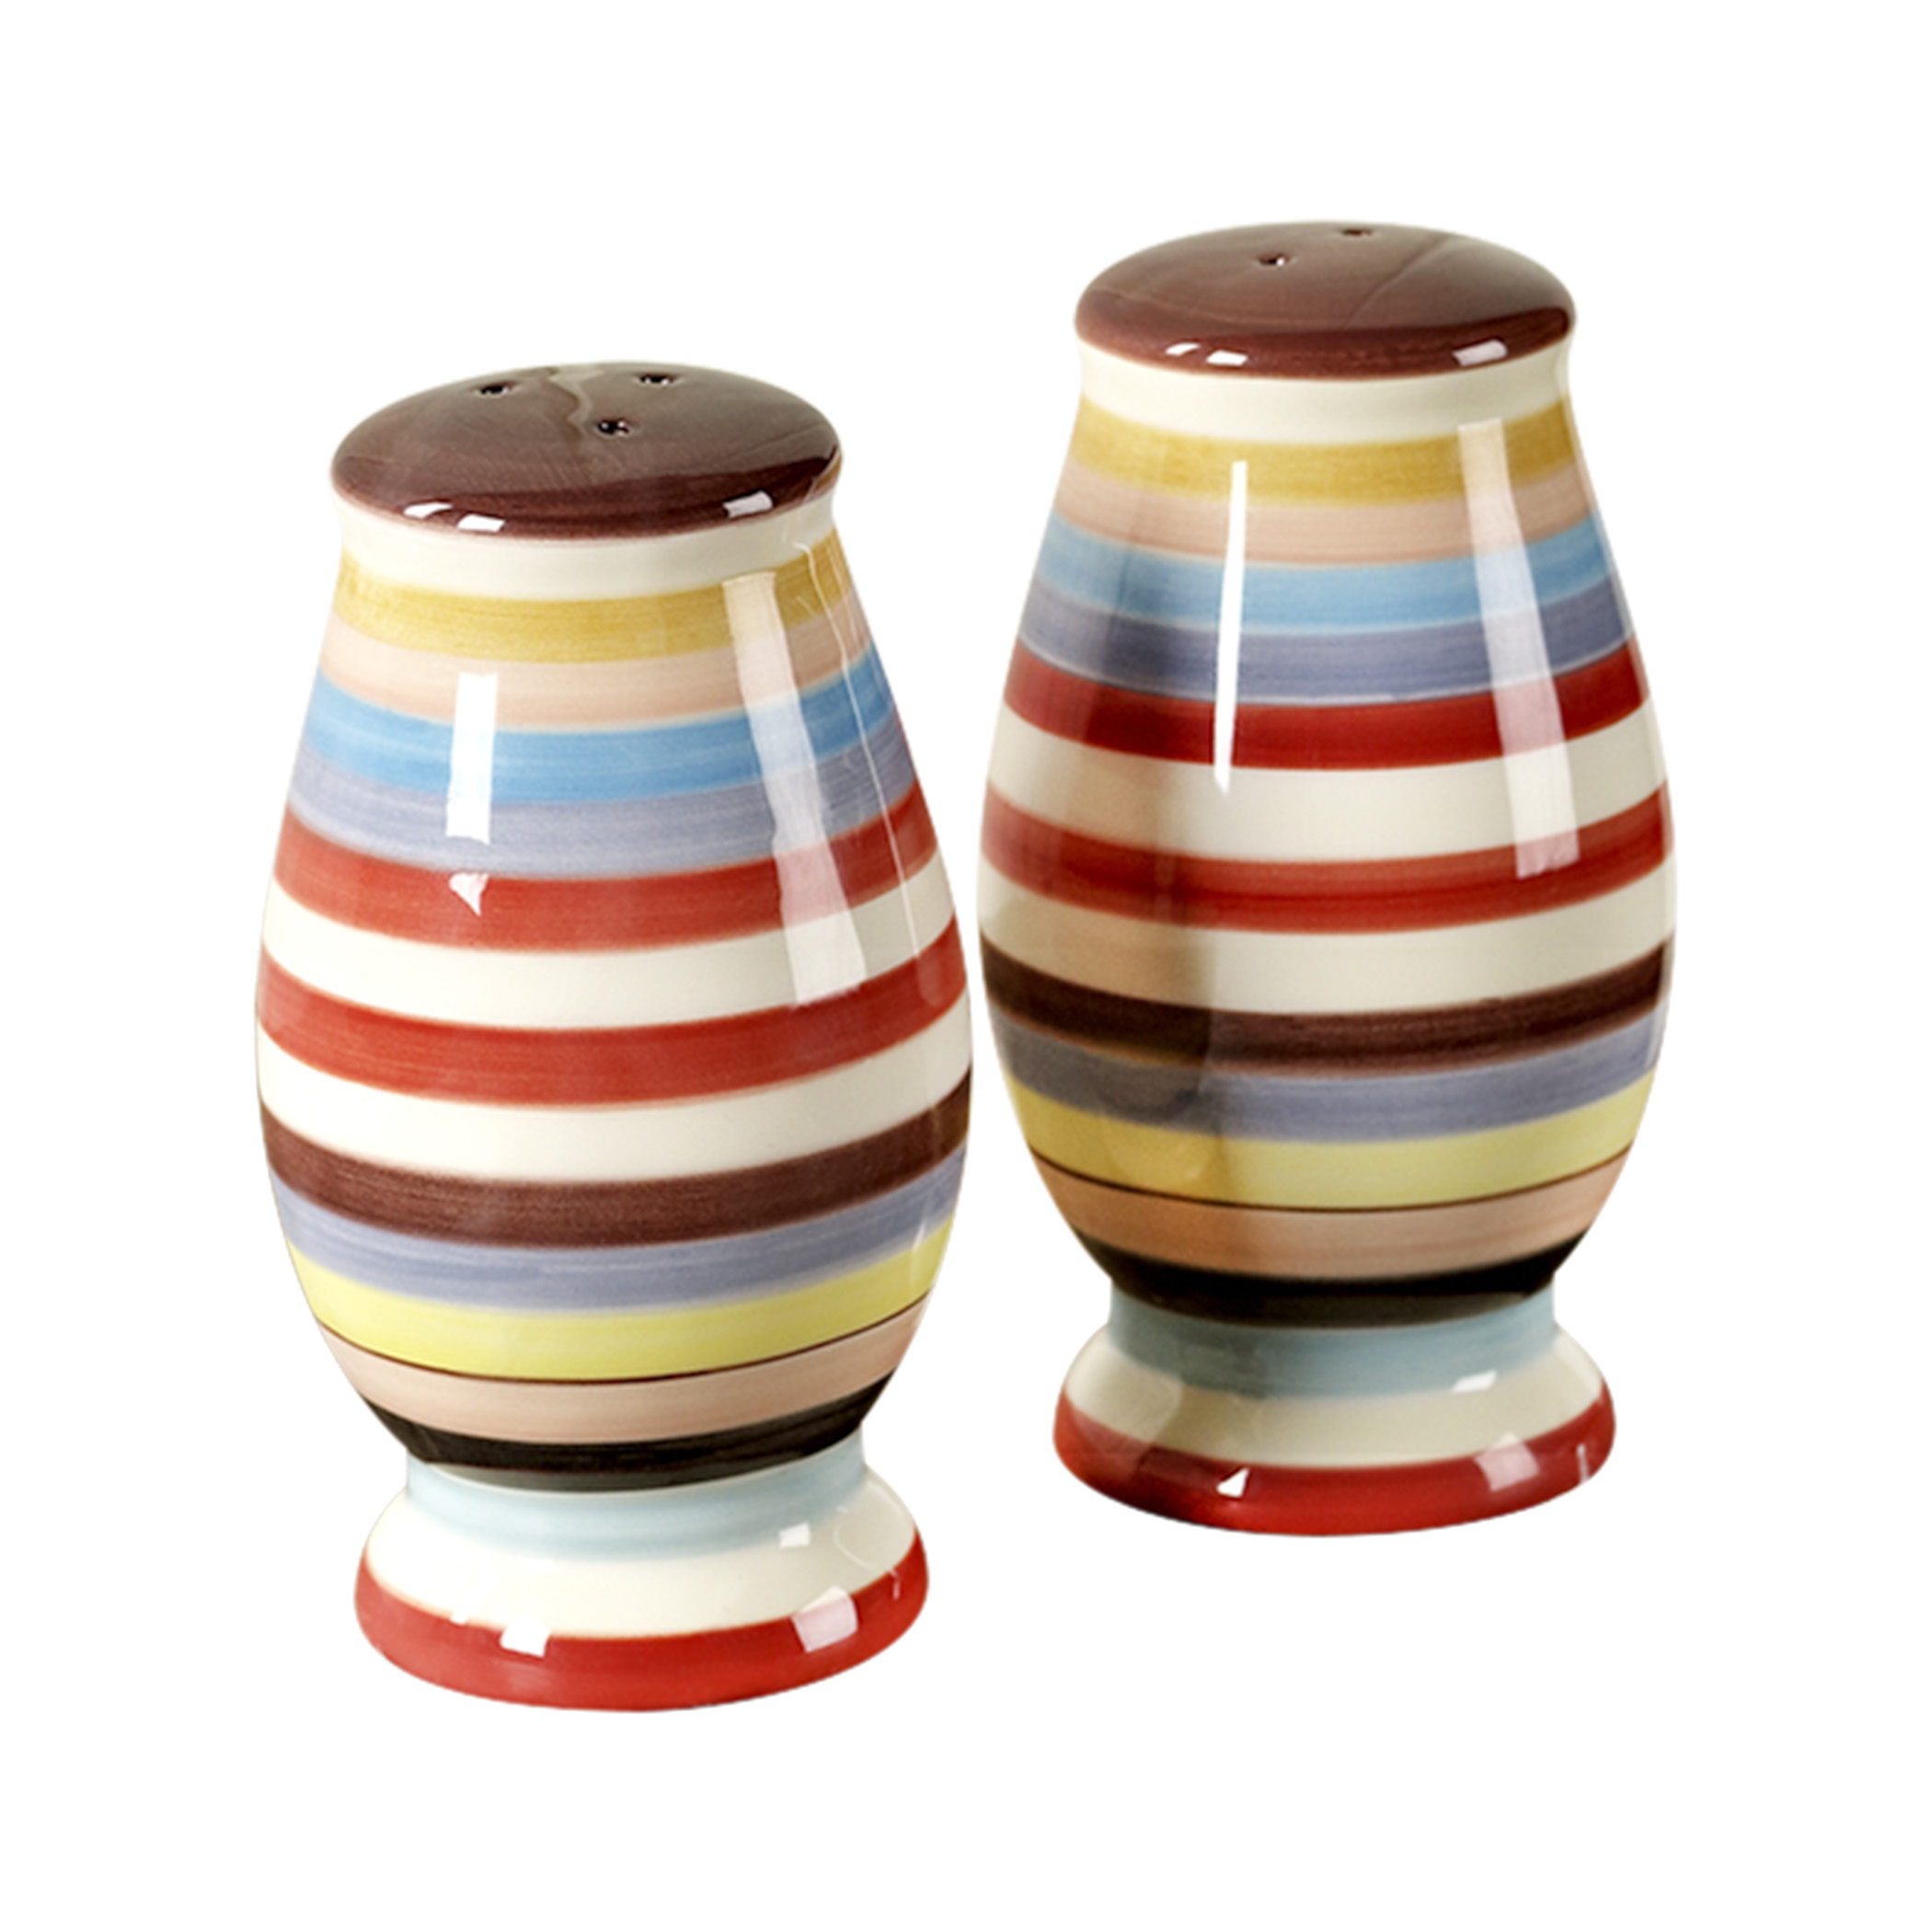 TMS M6834 EC Salt And Pepper Shaker Set By Tabletops Lifestyles